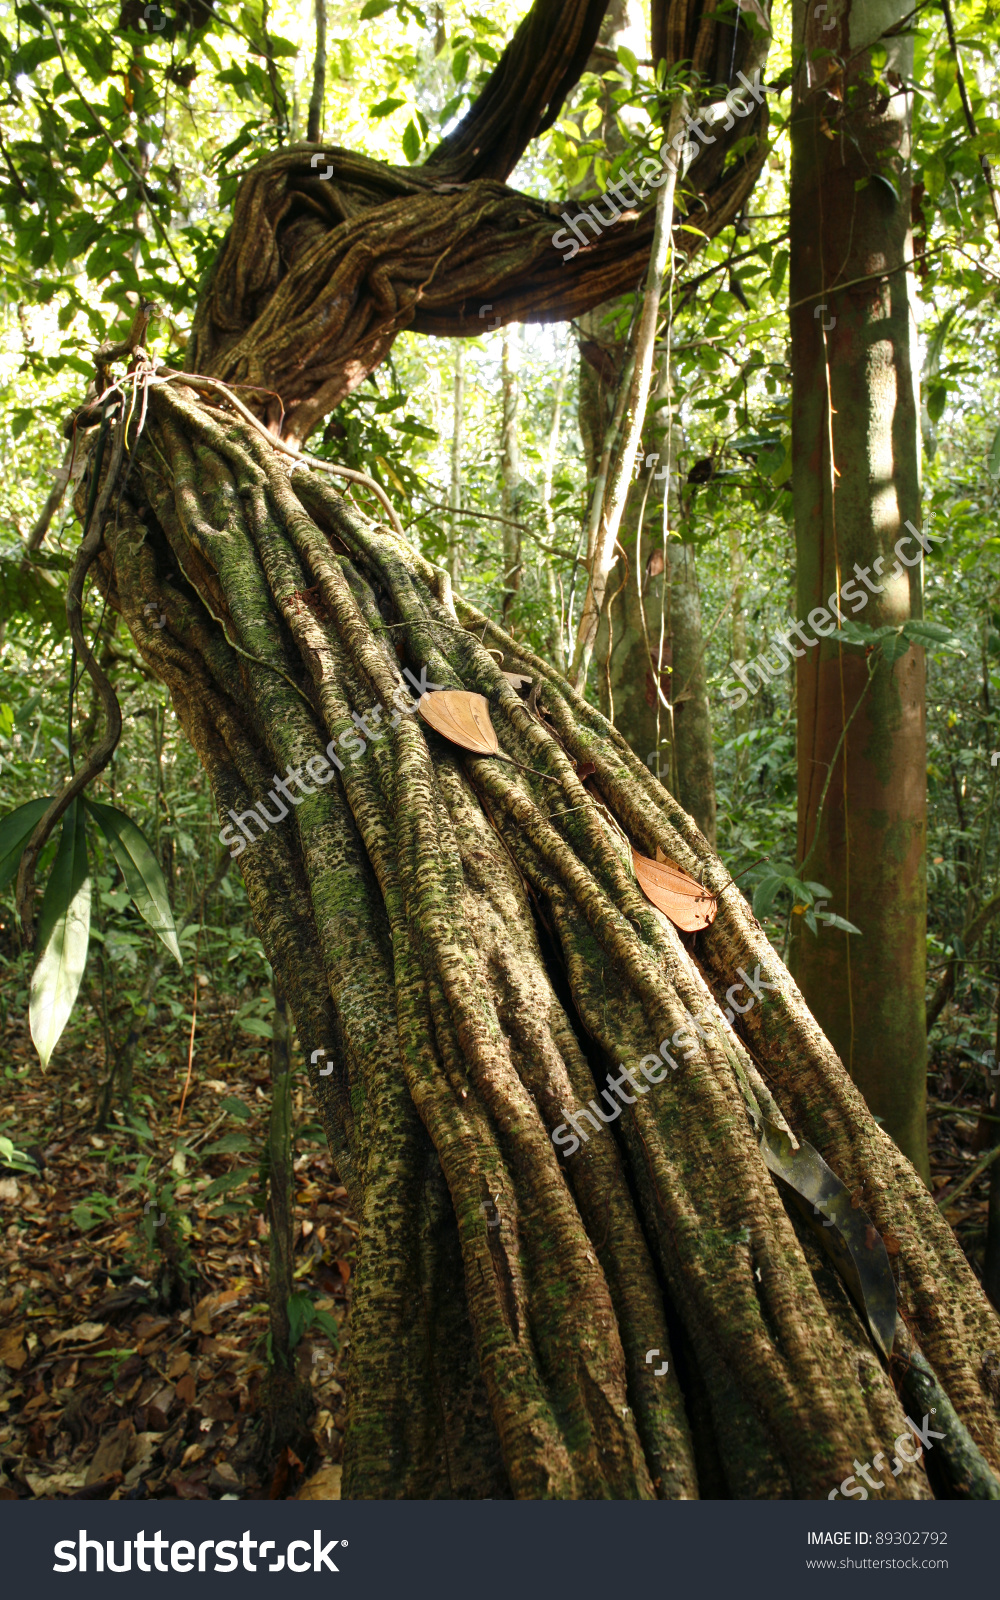 Liana Growing In Tropical Rainforest In The Peruvian Amazon Stock.